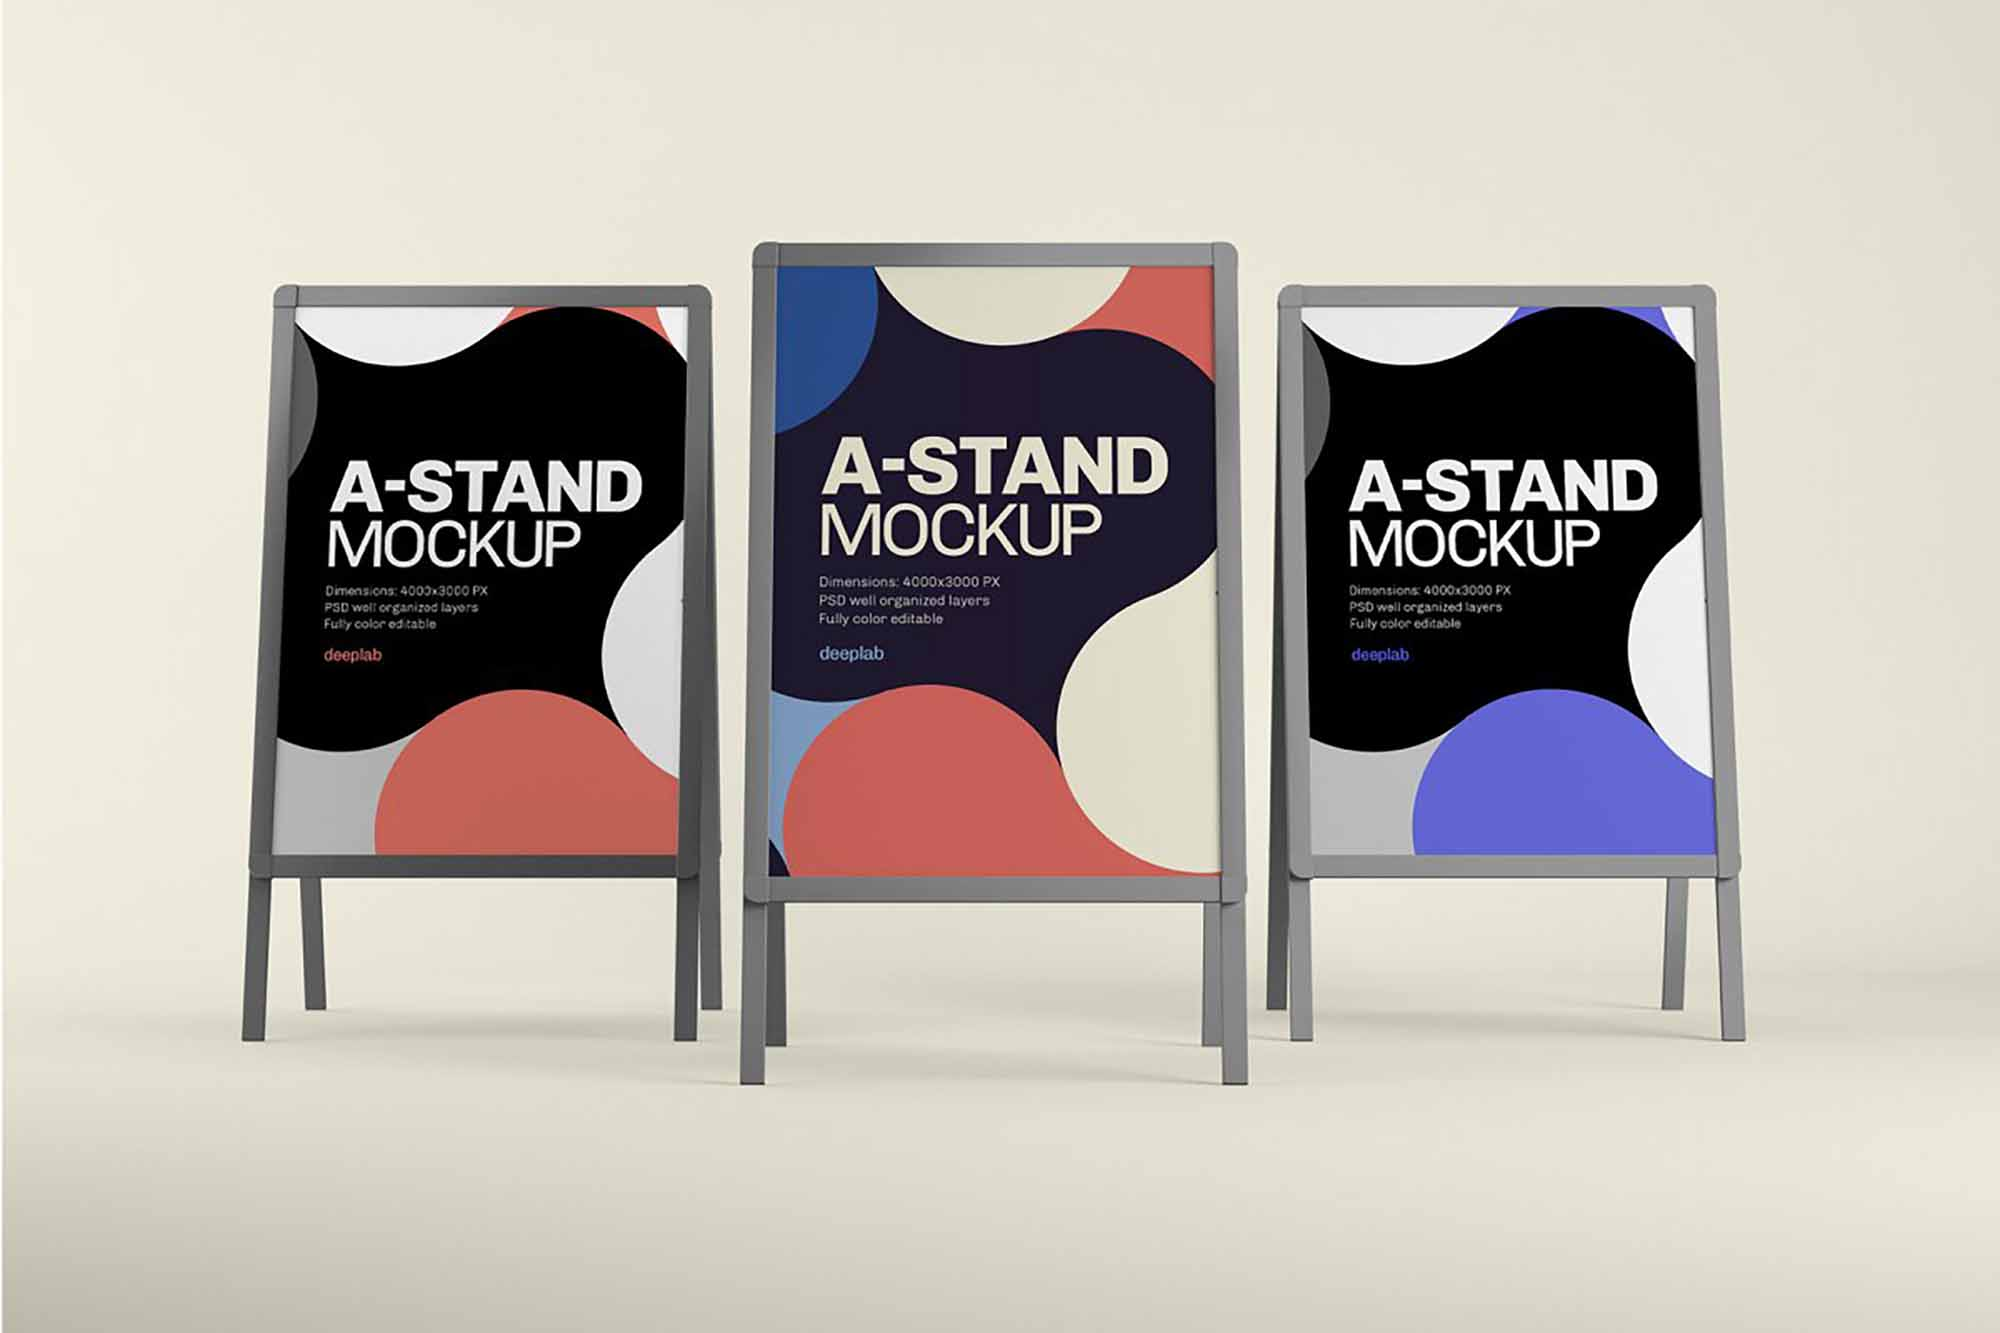 Advertising A-Stand Mockup